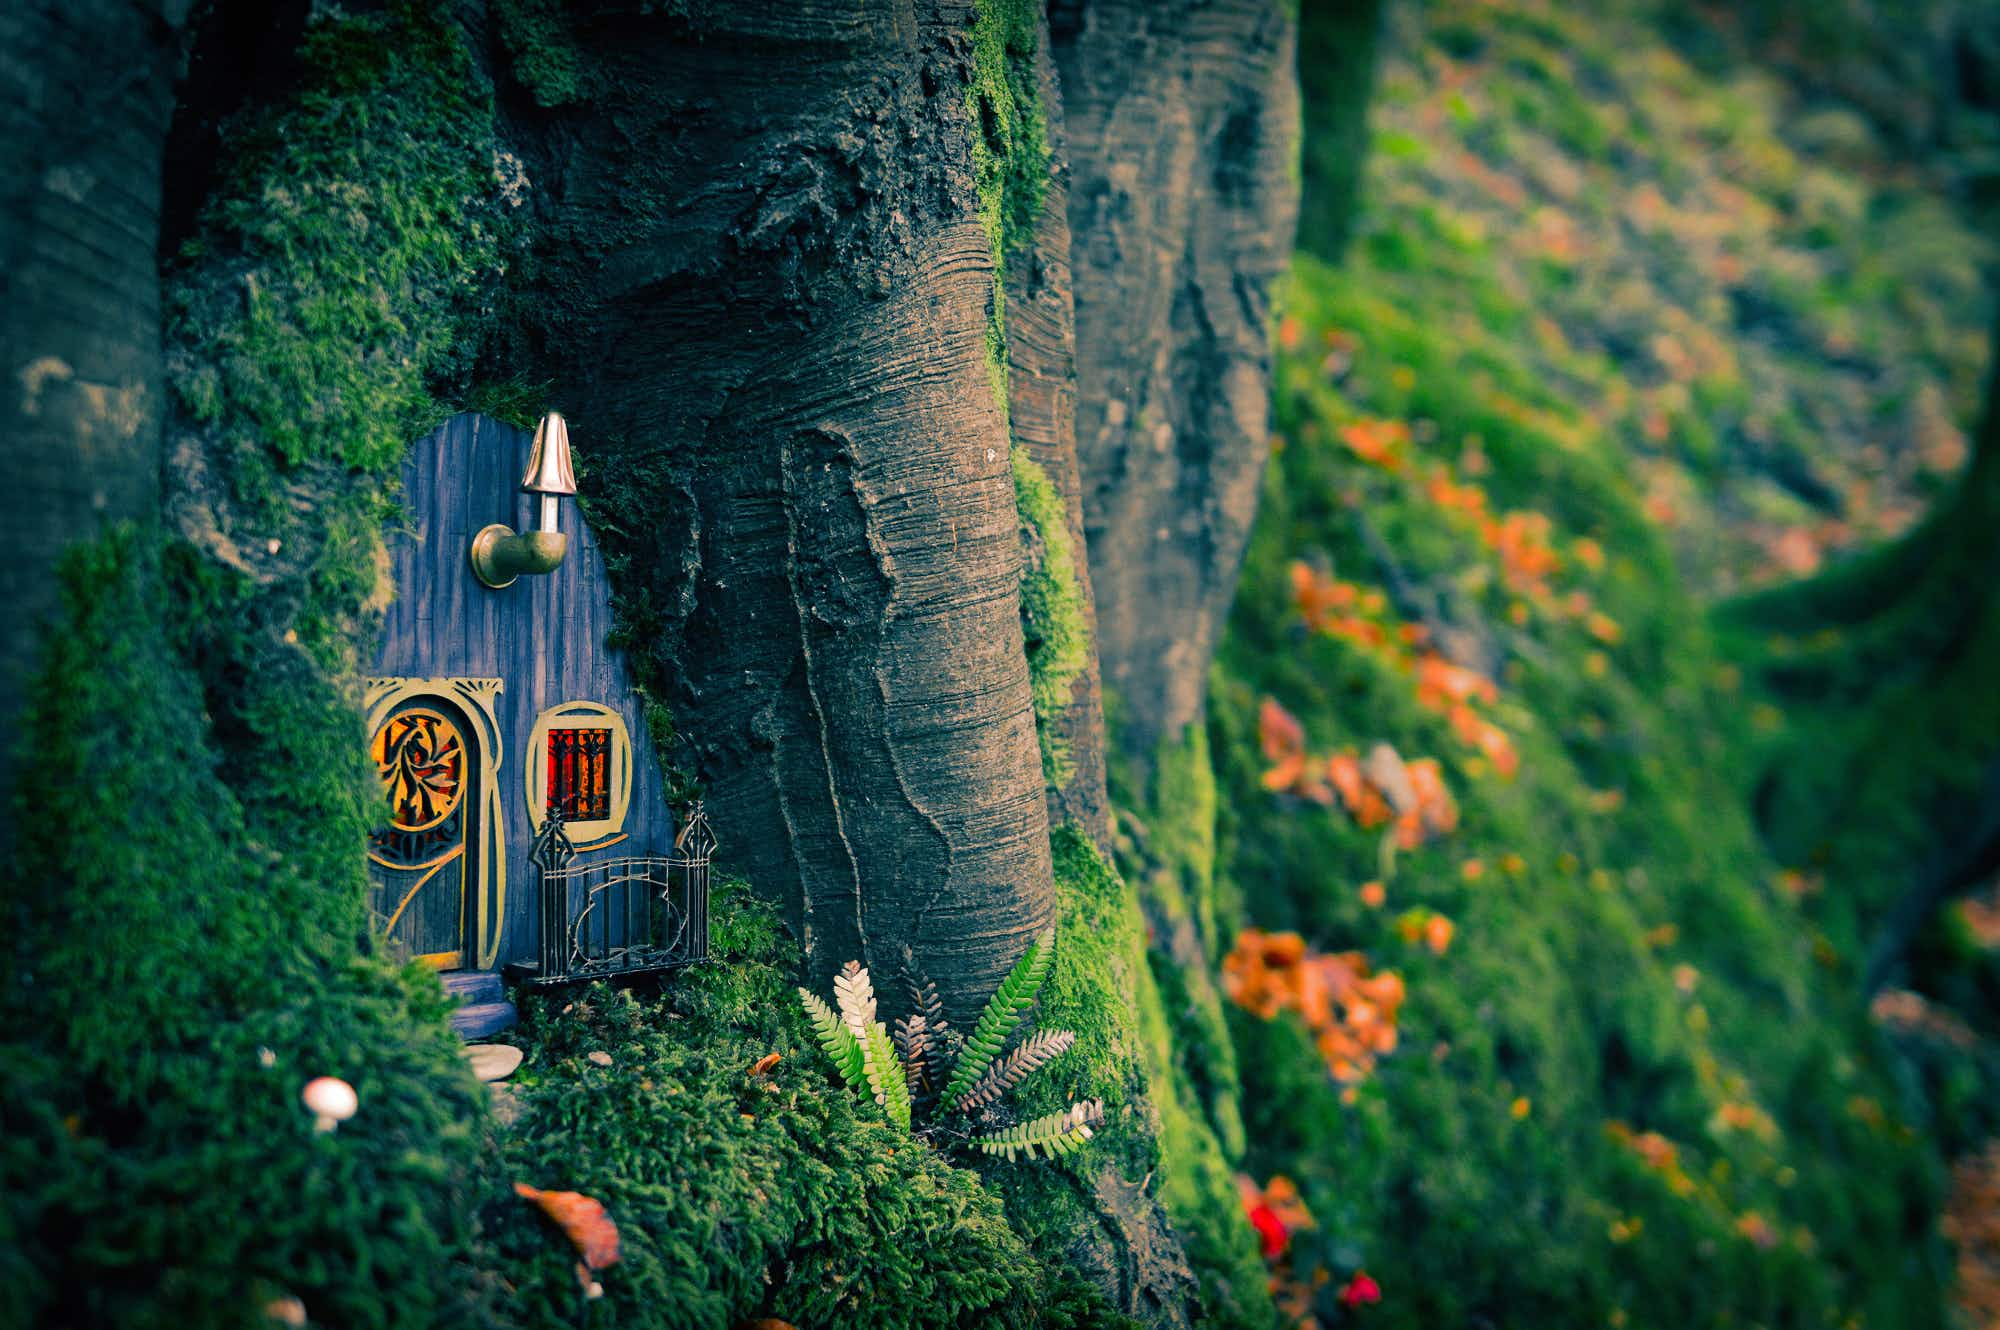 Mysterious miniature fairy houses have popped up across the Isle of Man